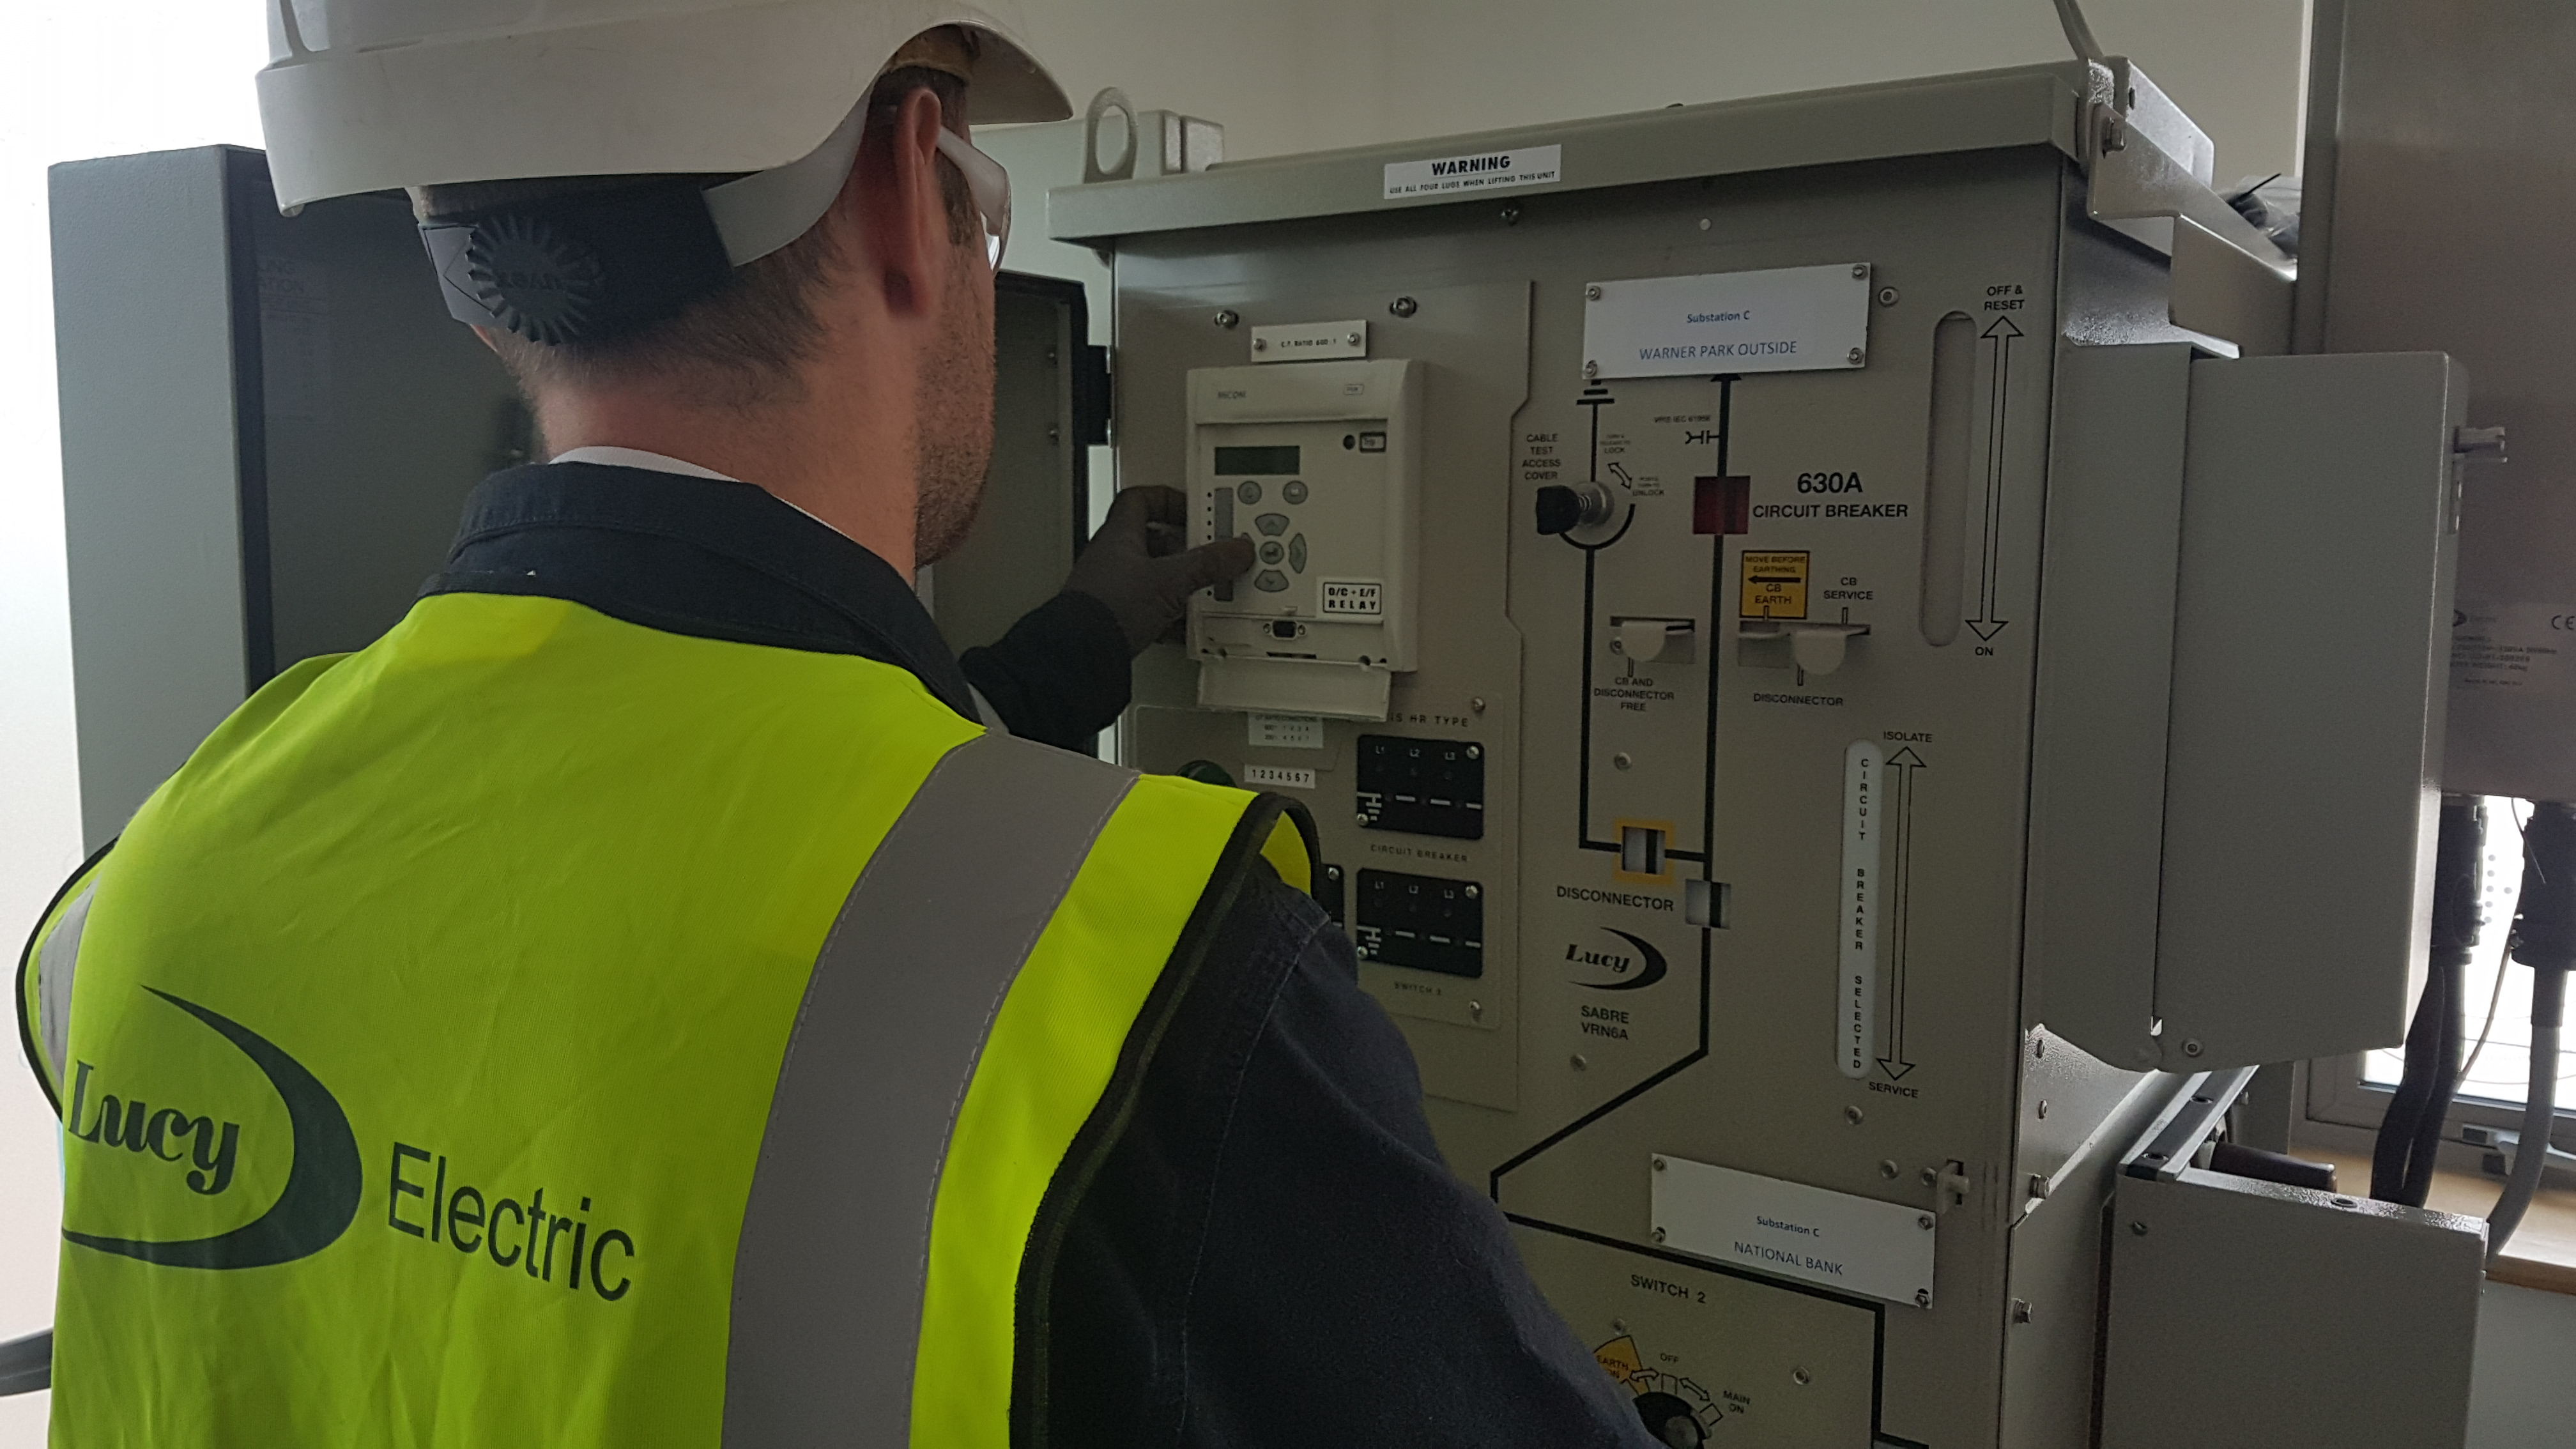 Complete Energy Services - Secondary Distribution - Lucy